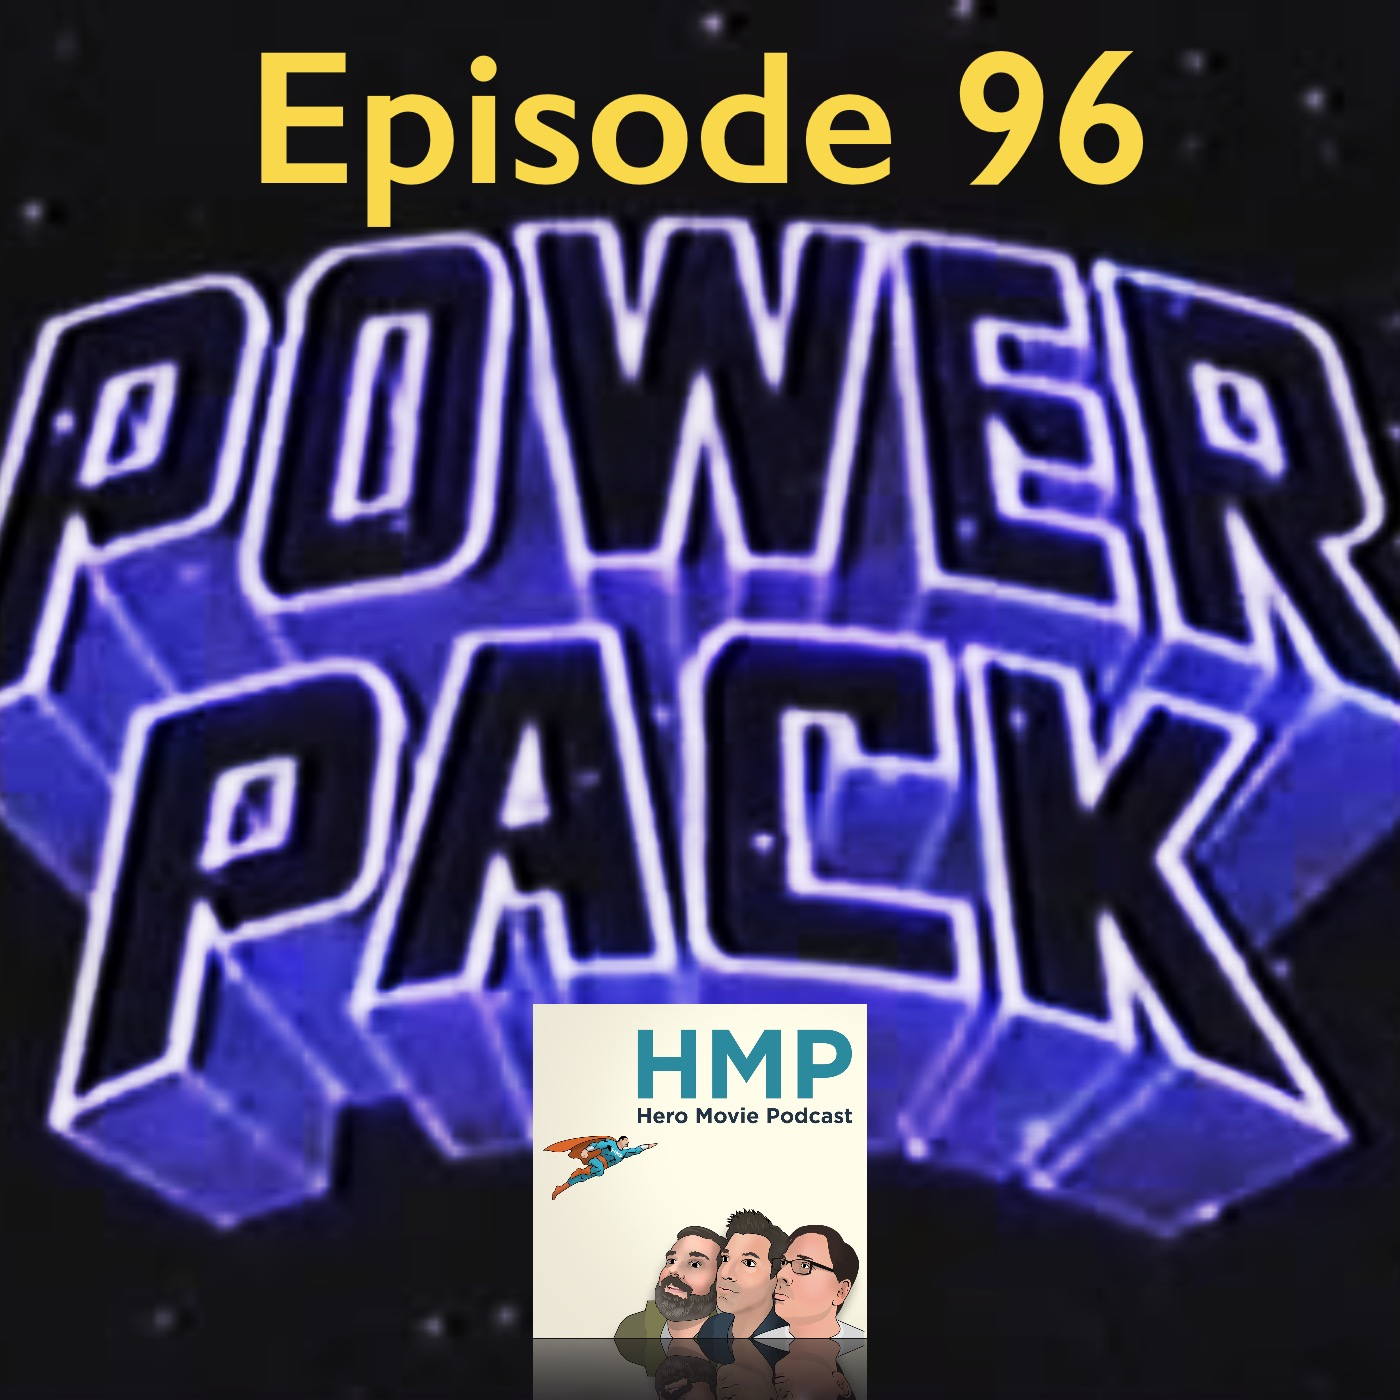 Episode 96- Power Pack